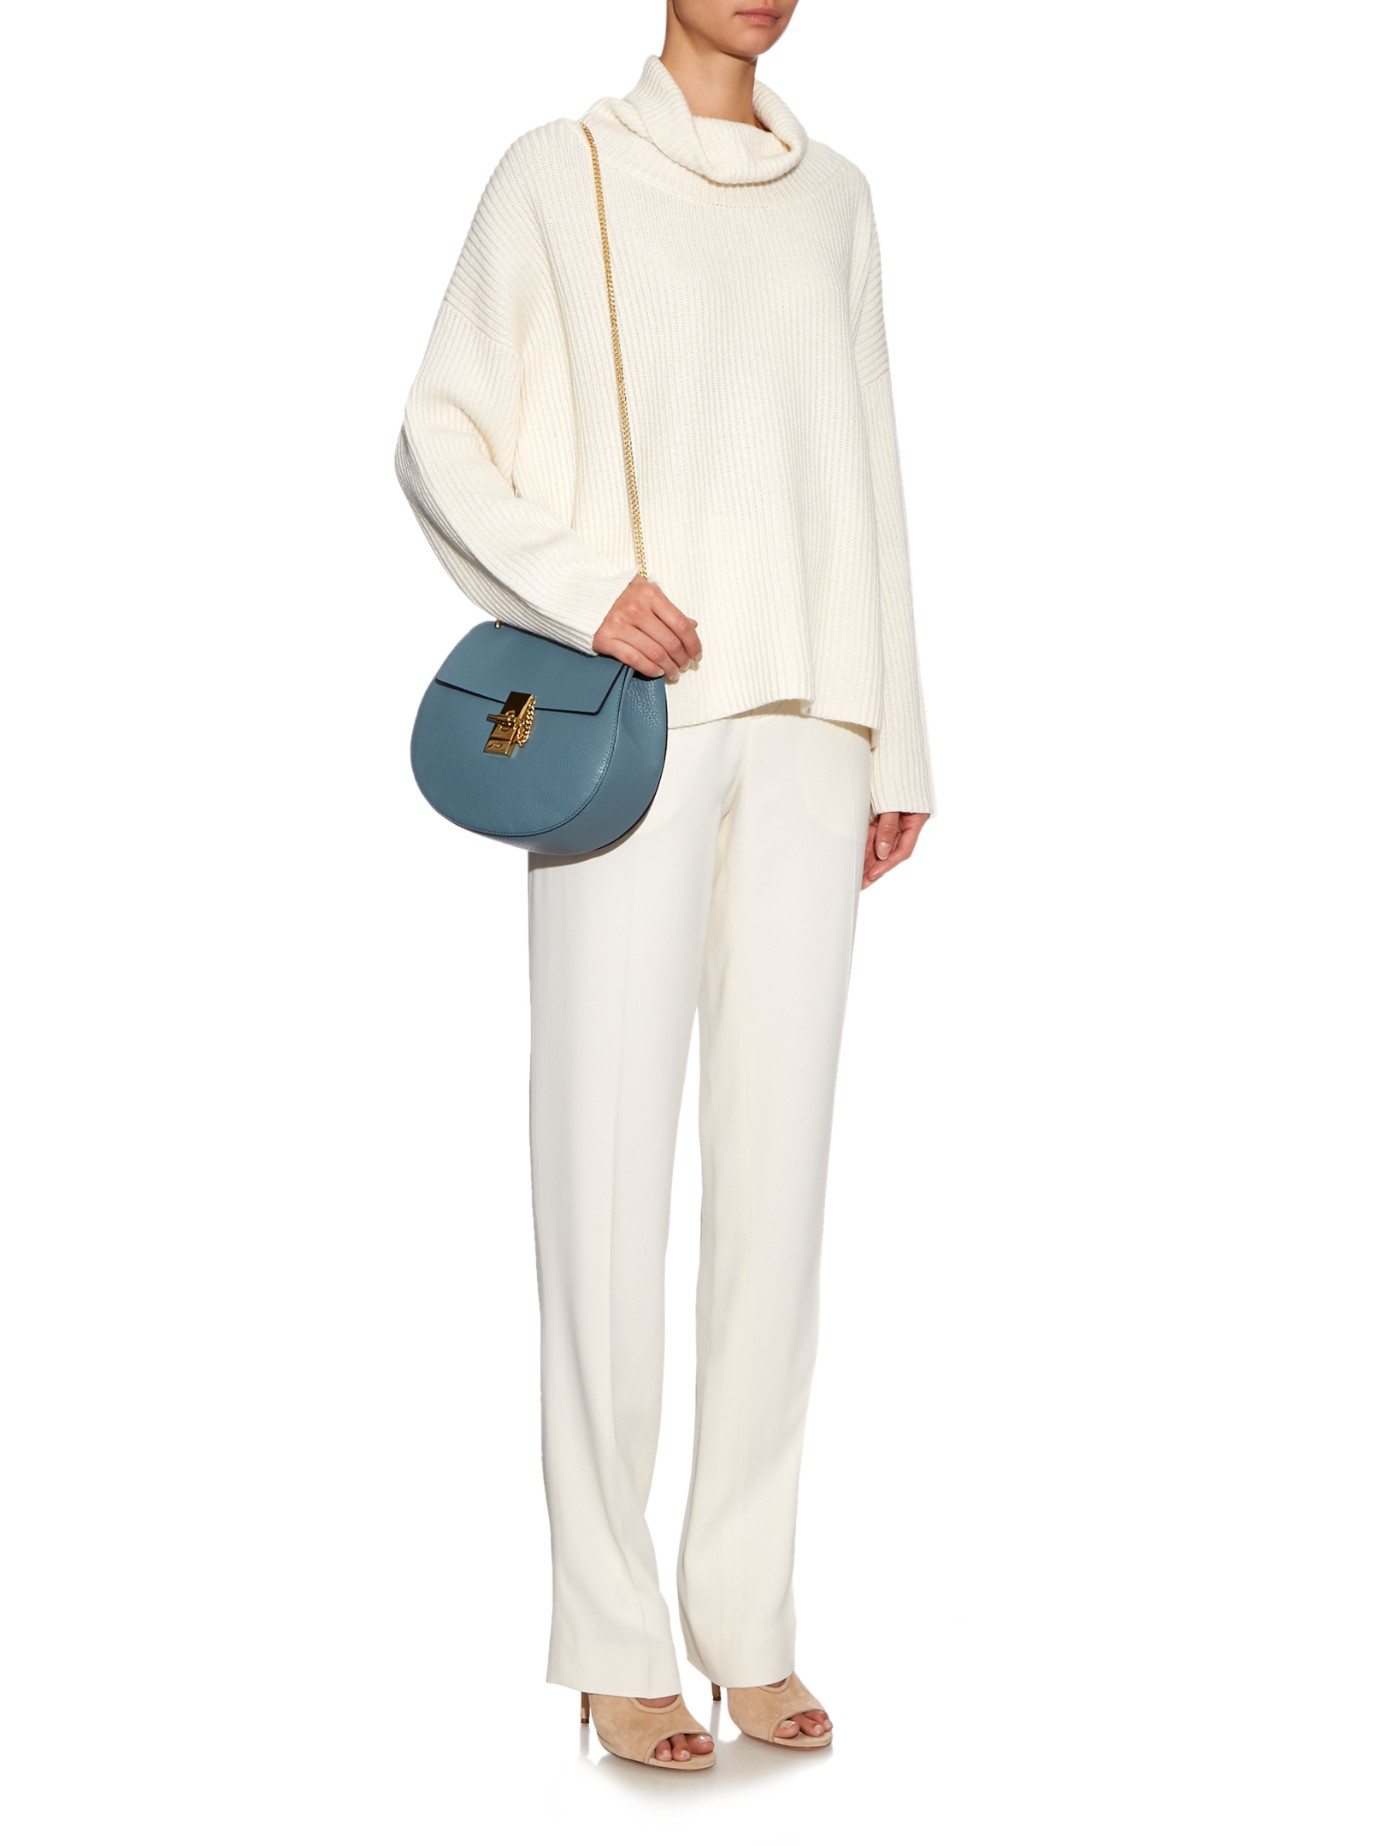 chloe grey bag - Chlo�� Drew Small Leather Cross-Body Bag in Blue (LIGHT BLUE) | Lyst